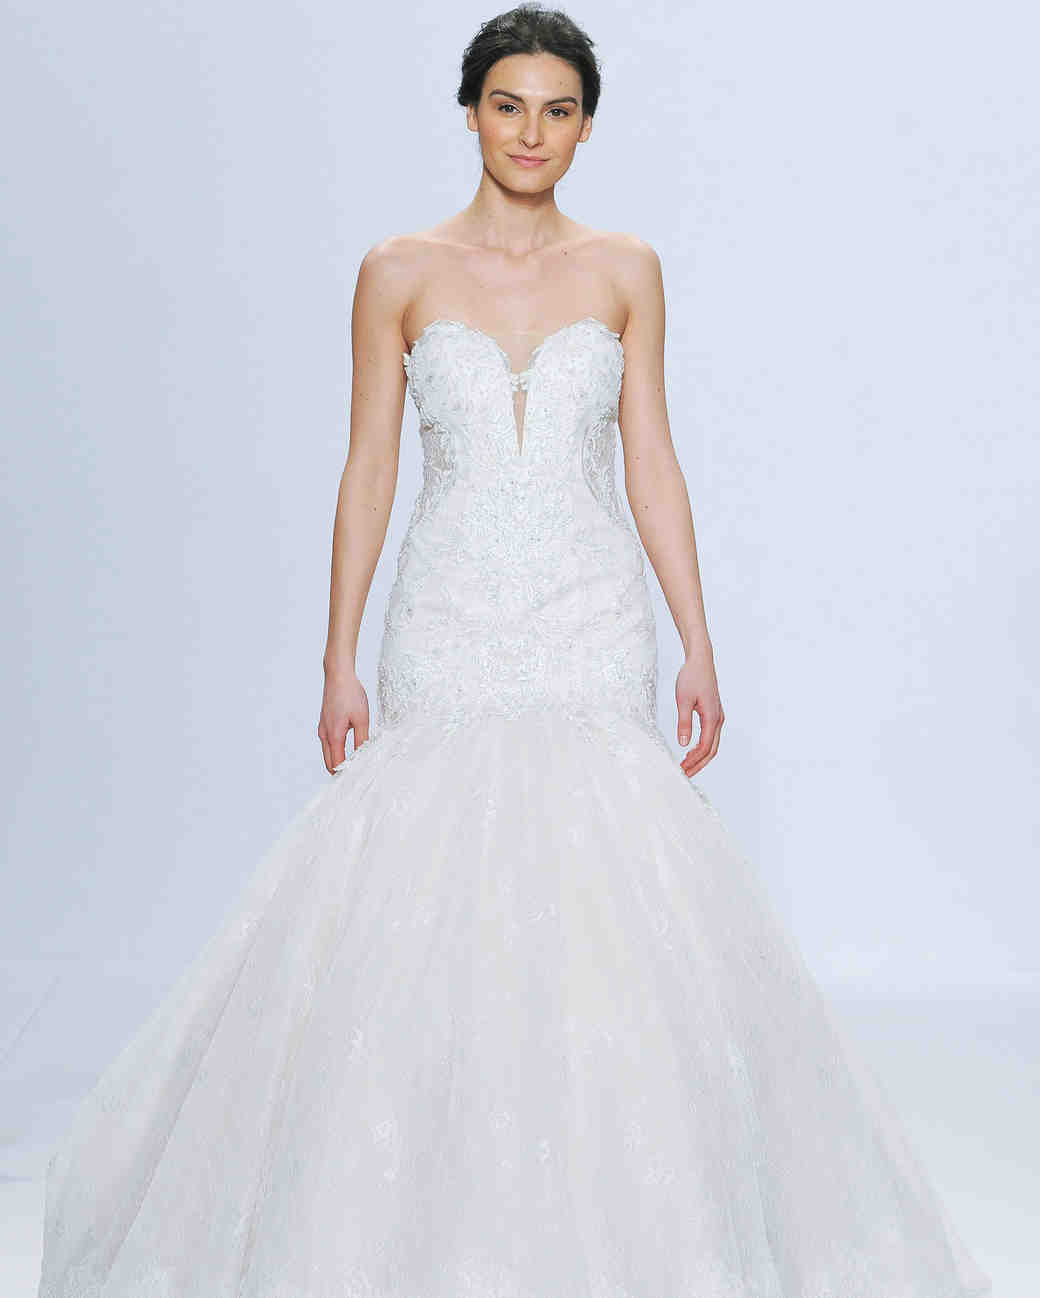 randy fenoli sharp v-neck wedding dress spring 2018